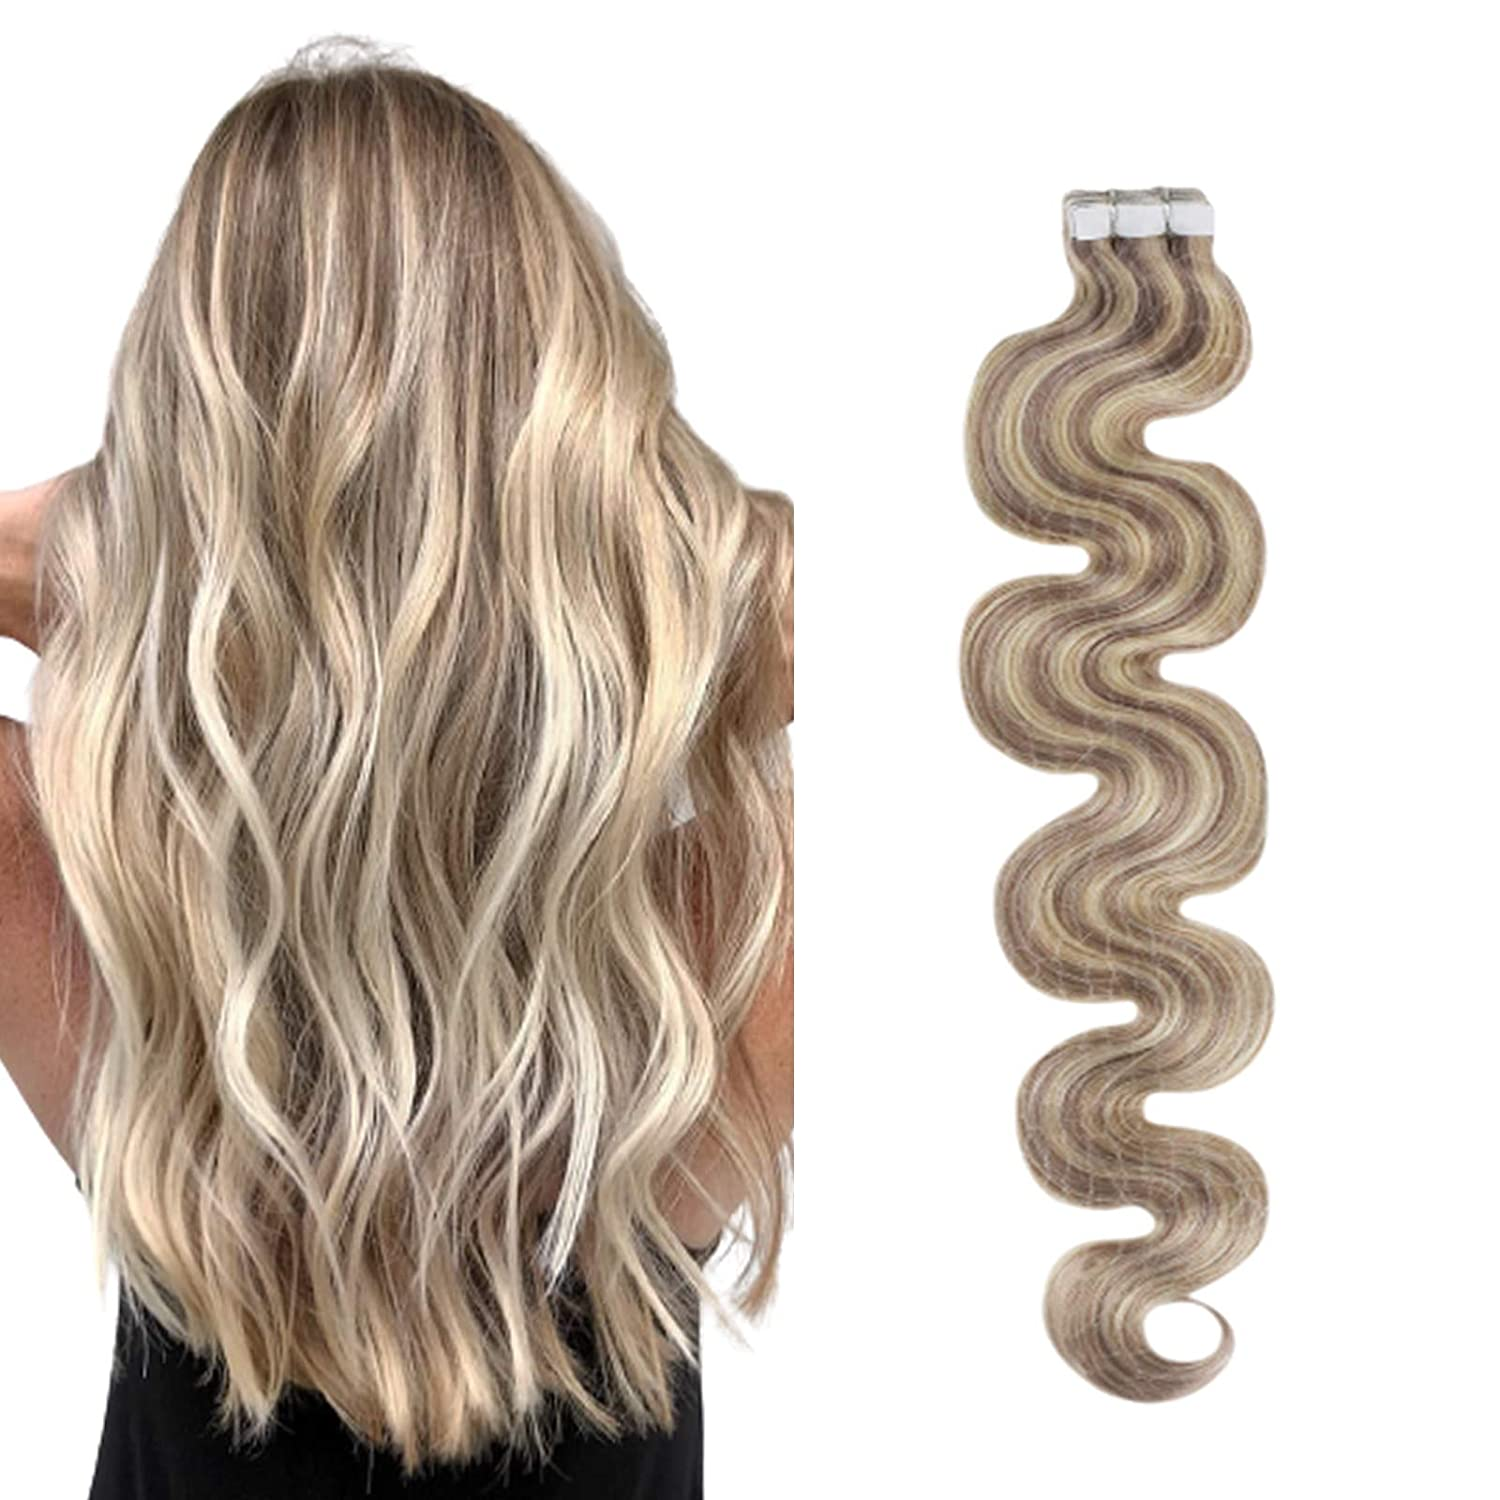 Ugeat 24Inch Tape in Extensions 613 #P18 Body NEW before selling ☆ Hair Fort Worth Mall Wave